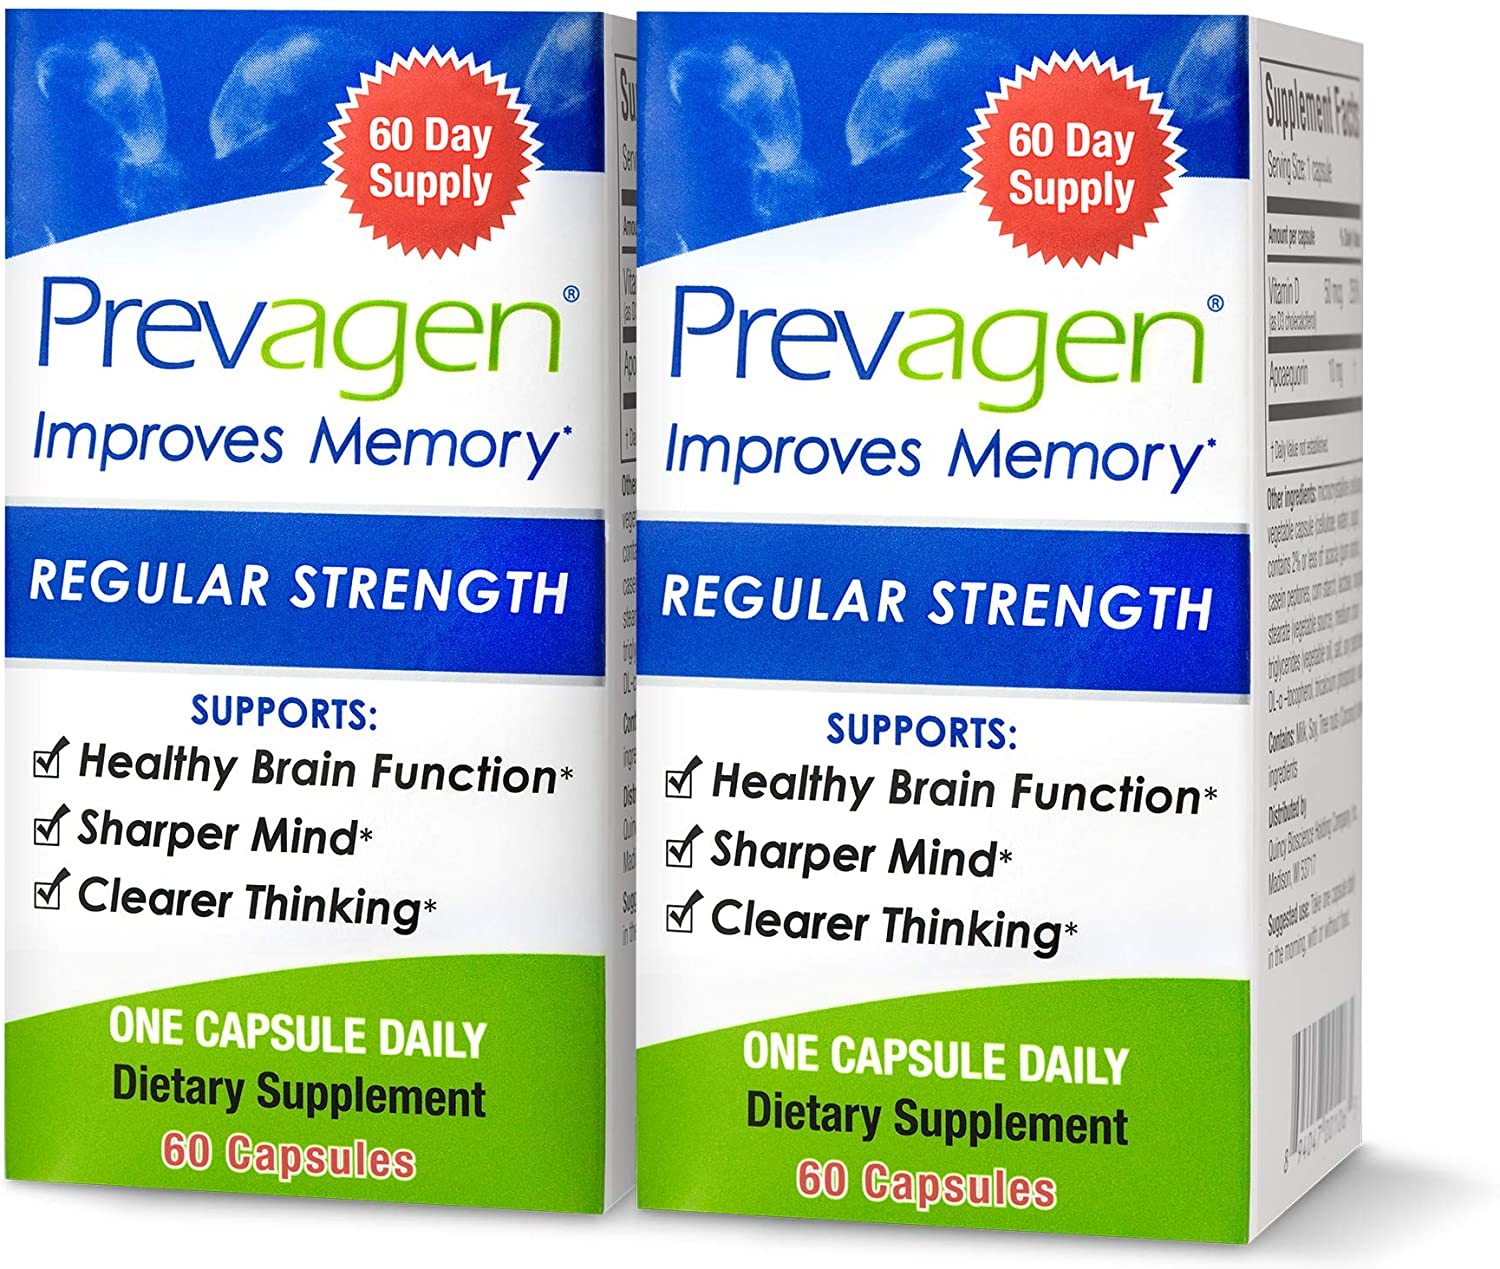 Prevagen Improves Memory - Regular Strength 10mg, 60 Capsules |2 Pack| with Apoaequorin & Vitamin D | Brain Supplement for Better Brain Health, Supports Healthy Brain Function and Clarity